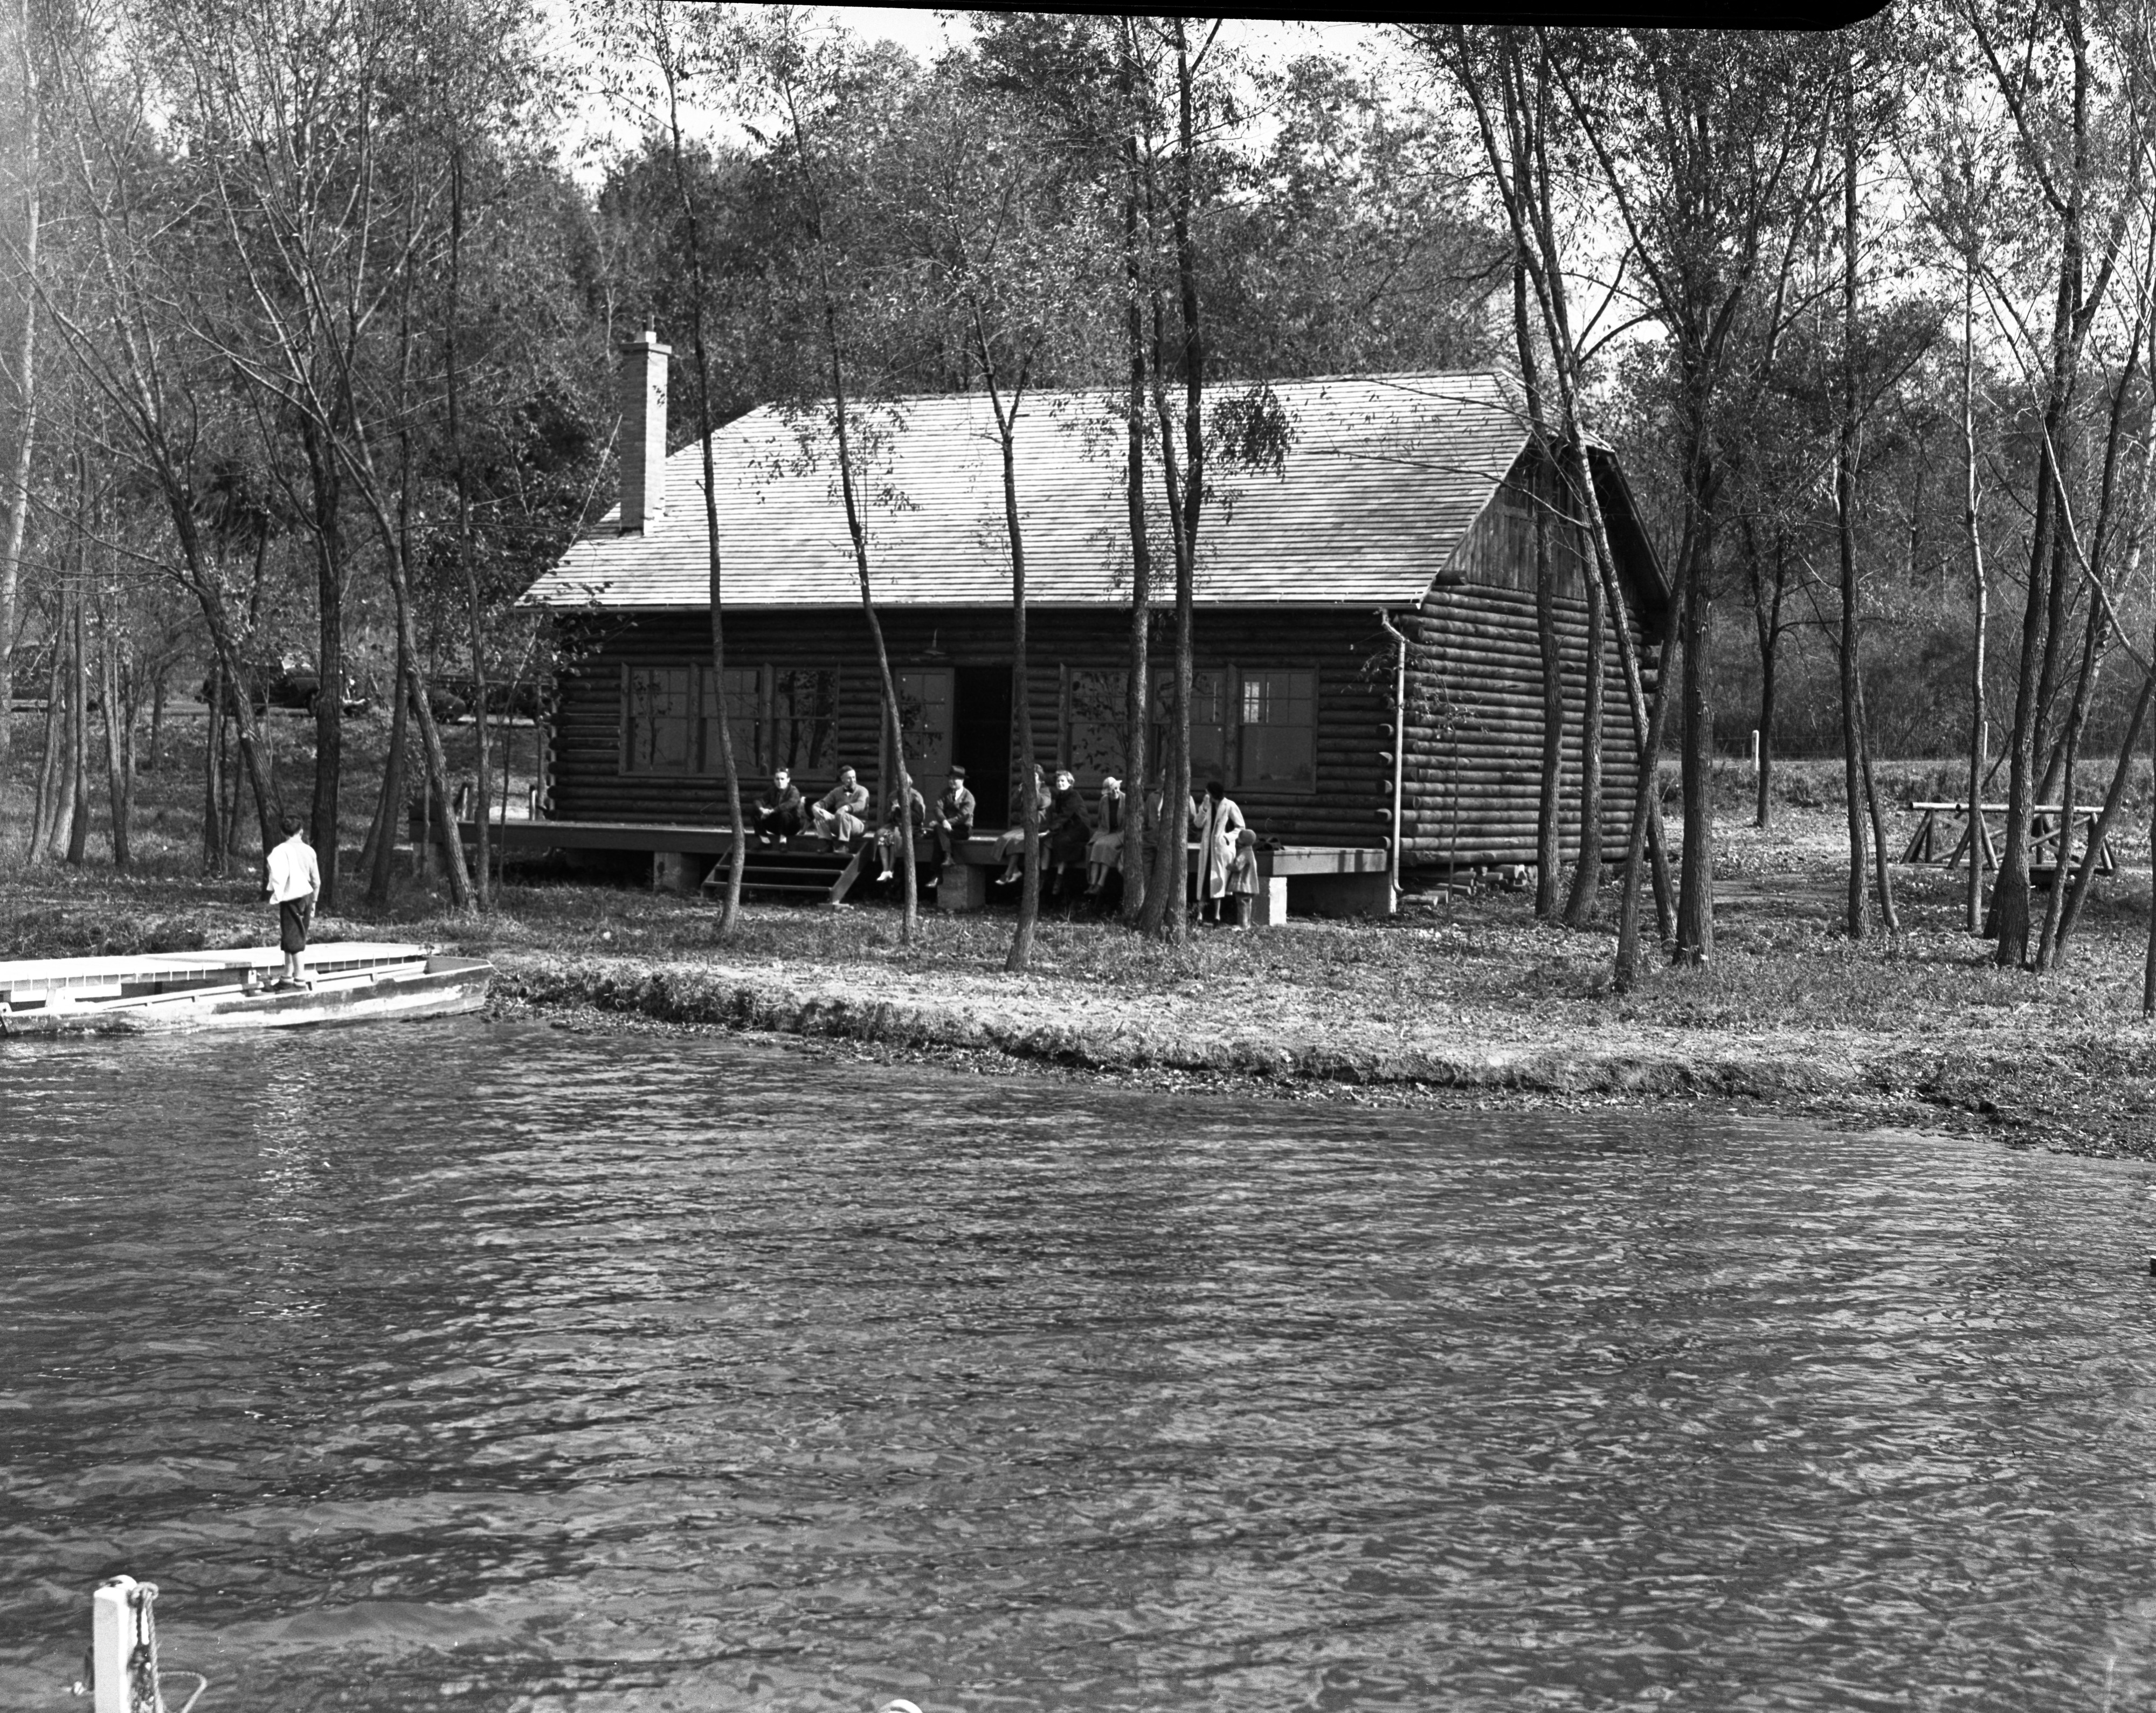 Barton Boat Club Boathouse, 1937 image